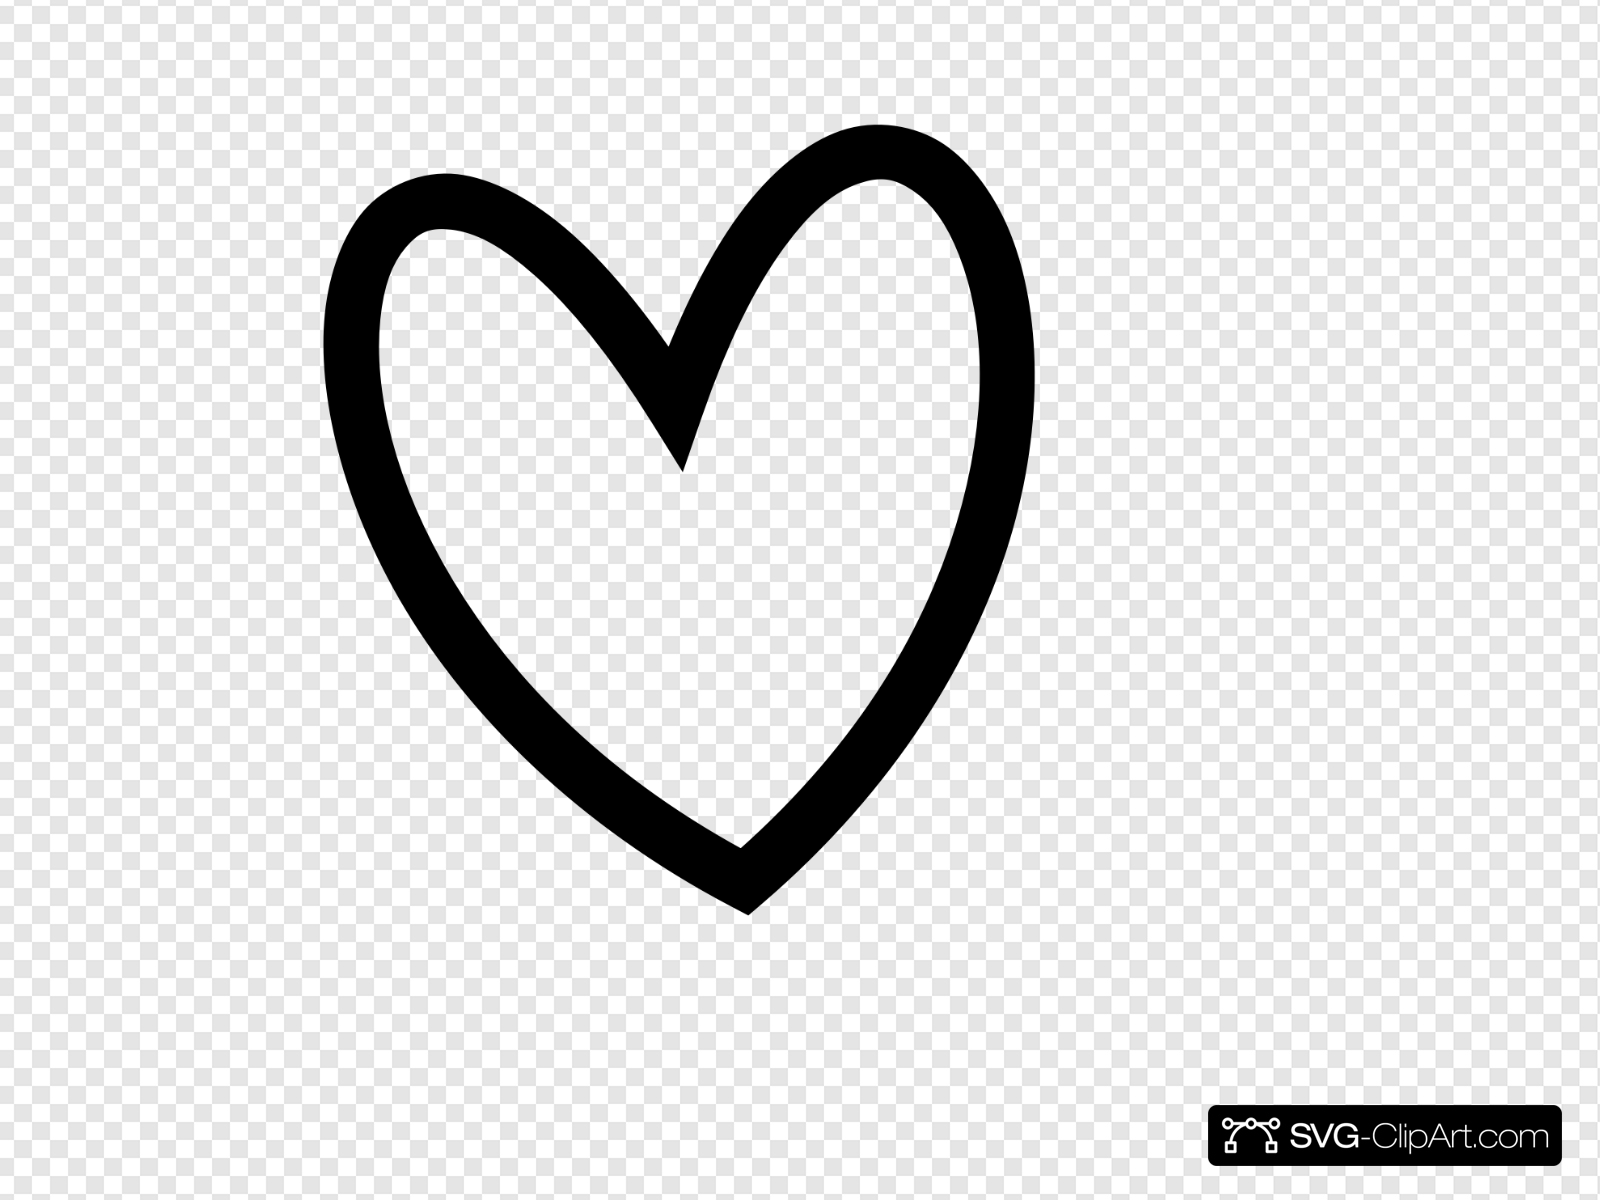 svg heart #871, Download drawings